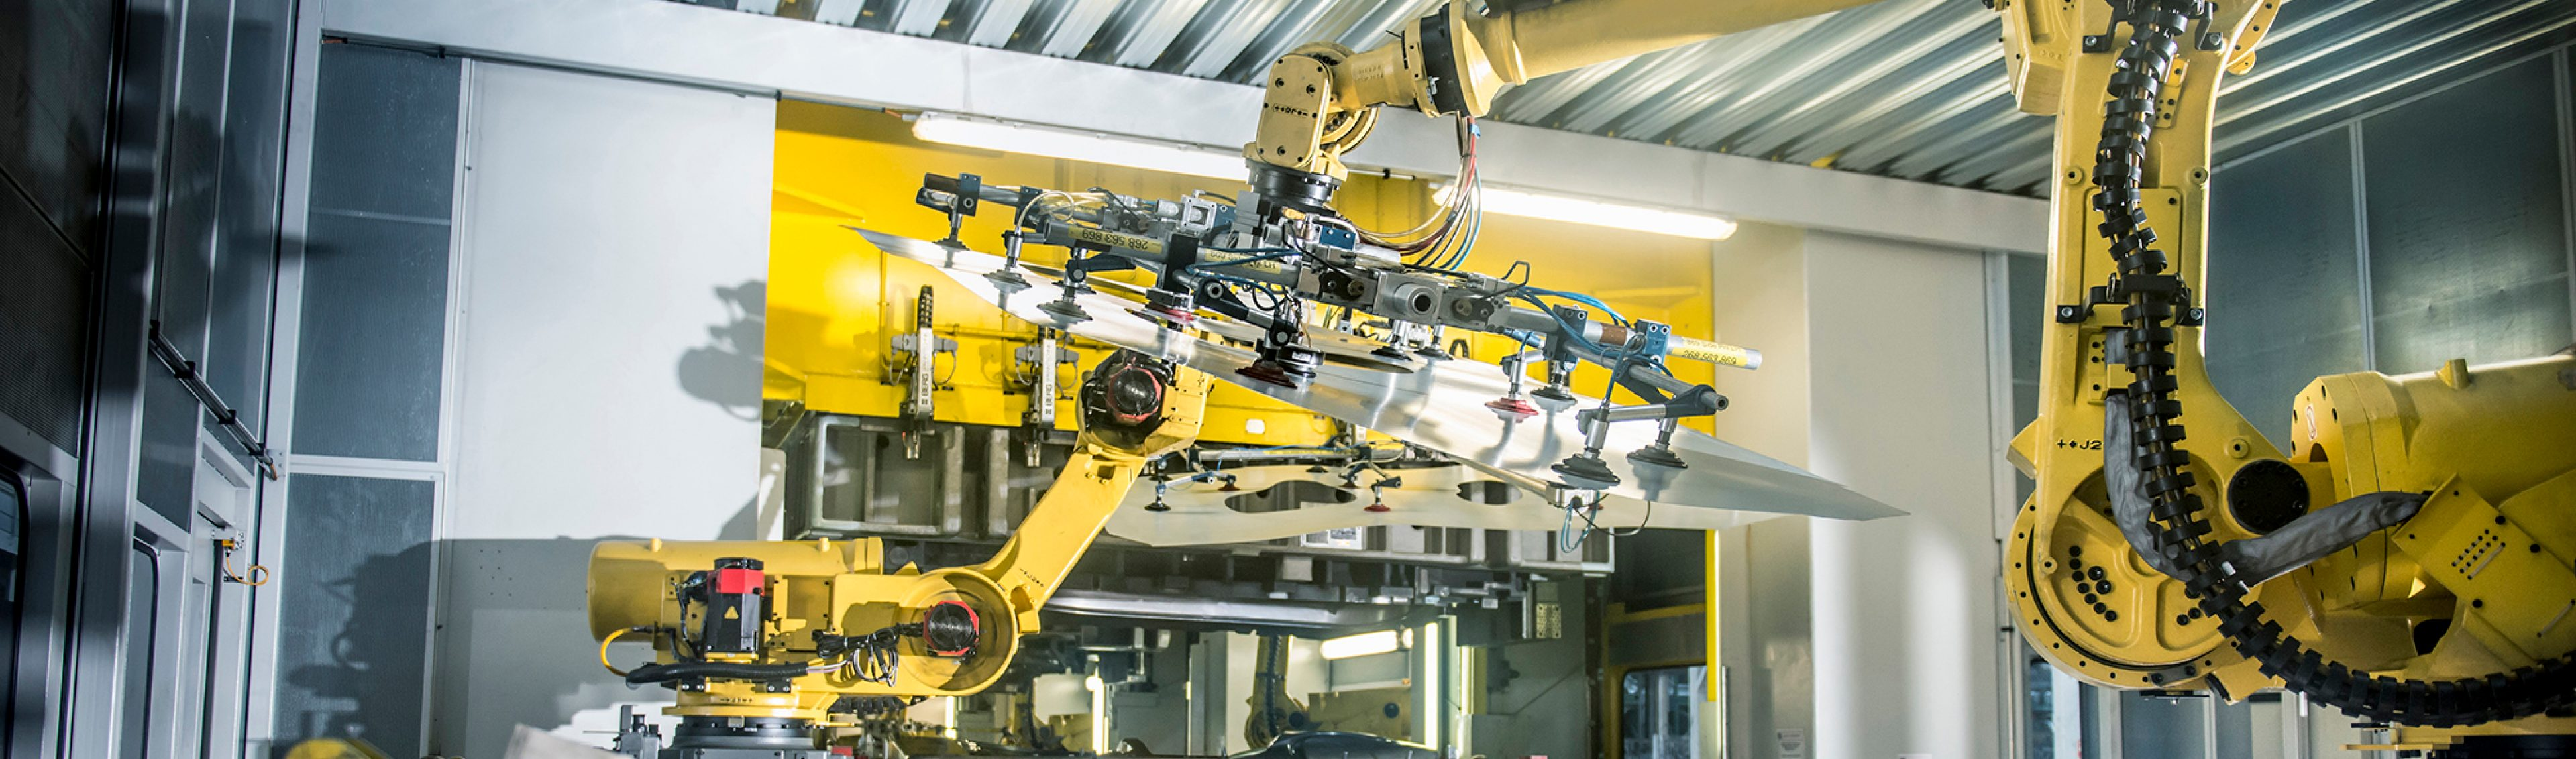 Car parts handled by robots in car factory --- Image by © Monty Rakusen/cultura/Corbis